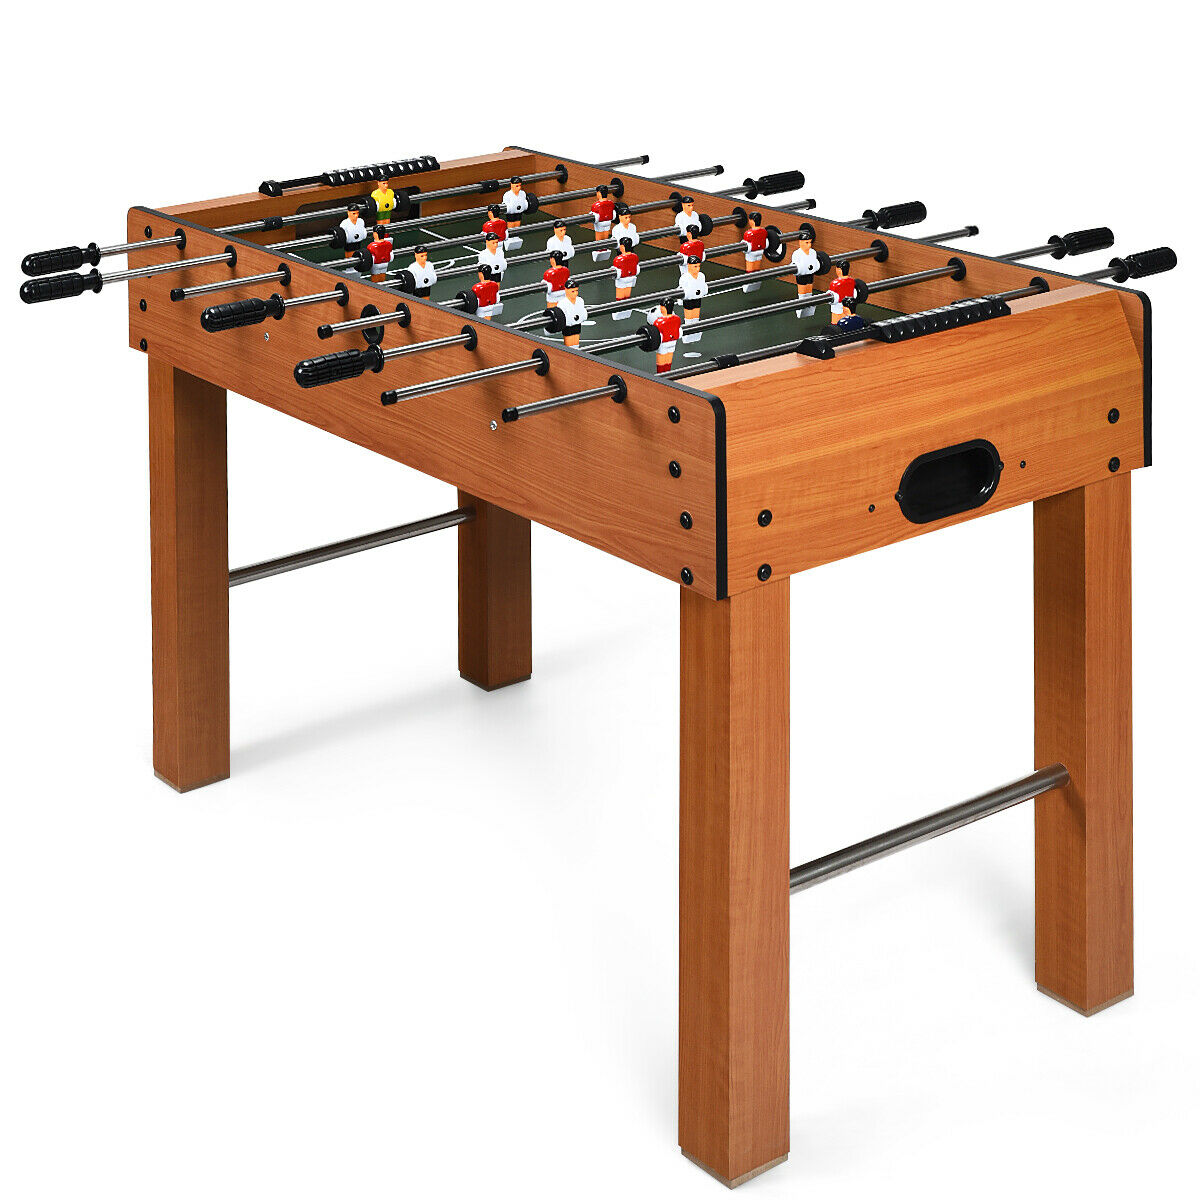 Alomejor Scoring Table Football Competition Foosball Game Table Soccer Indoor Competitive Mini Tabletop Fun Play 2pcs//set